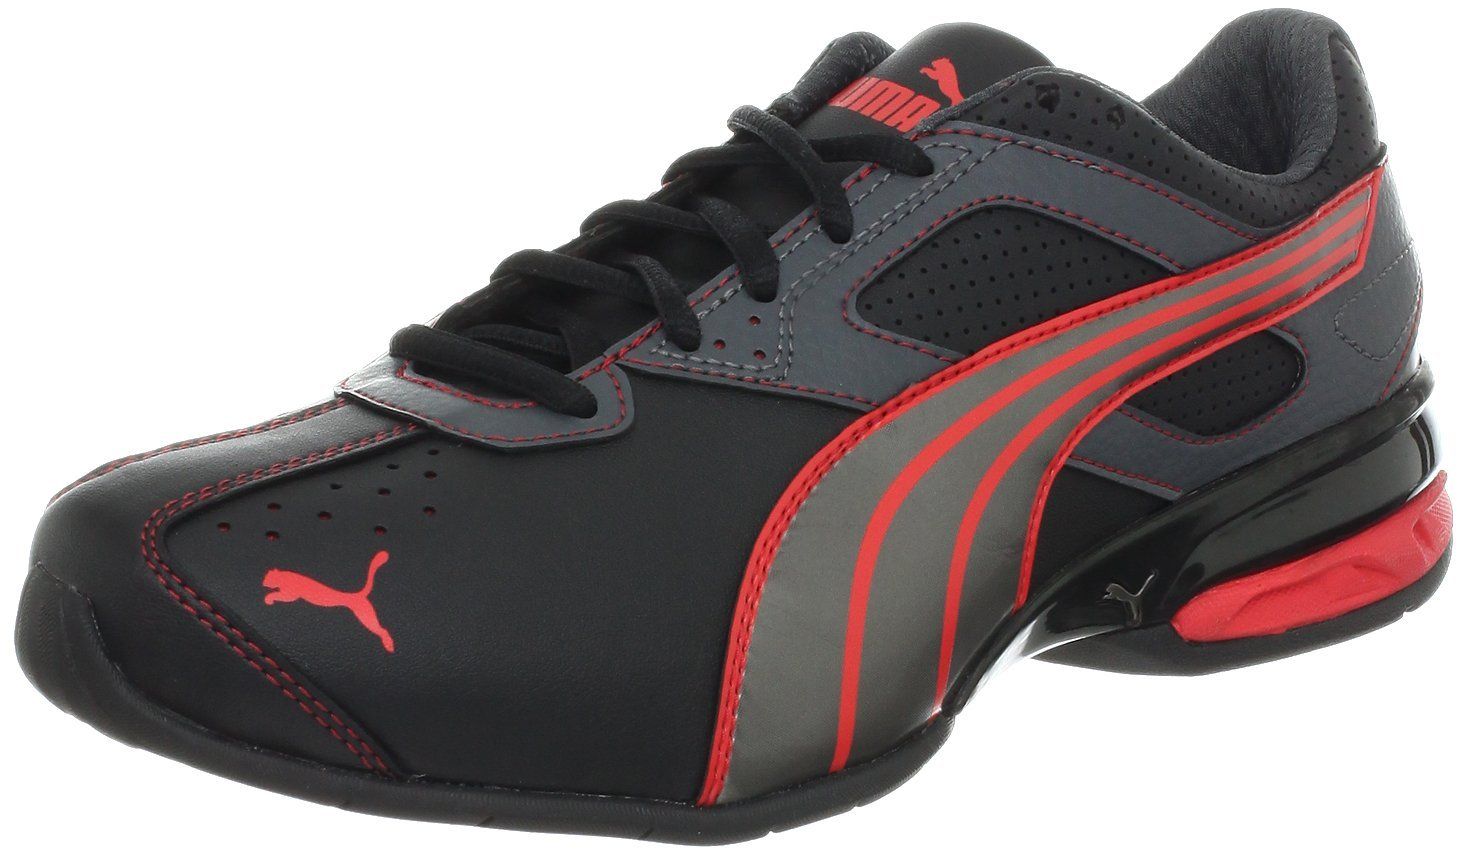 PUMA Tazon 5 Cross-Training Shoe BlackSilverHibiscus f025dcadb